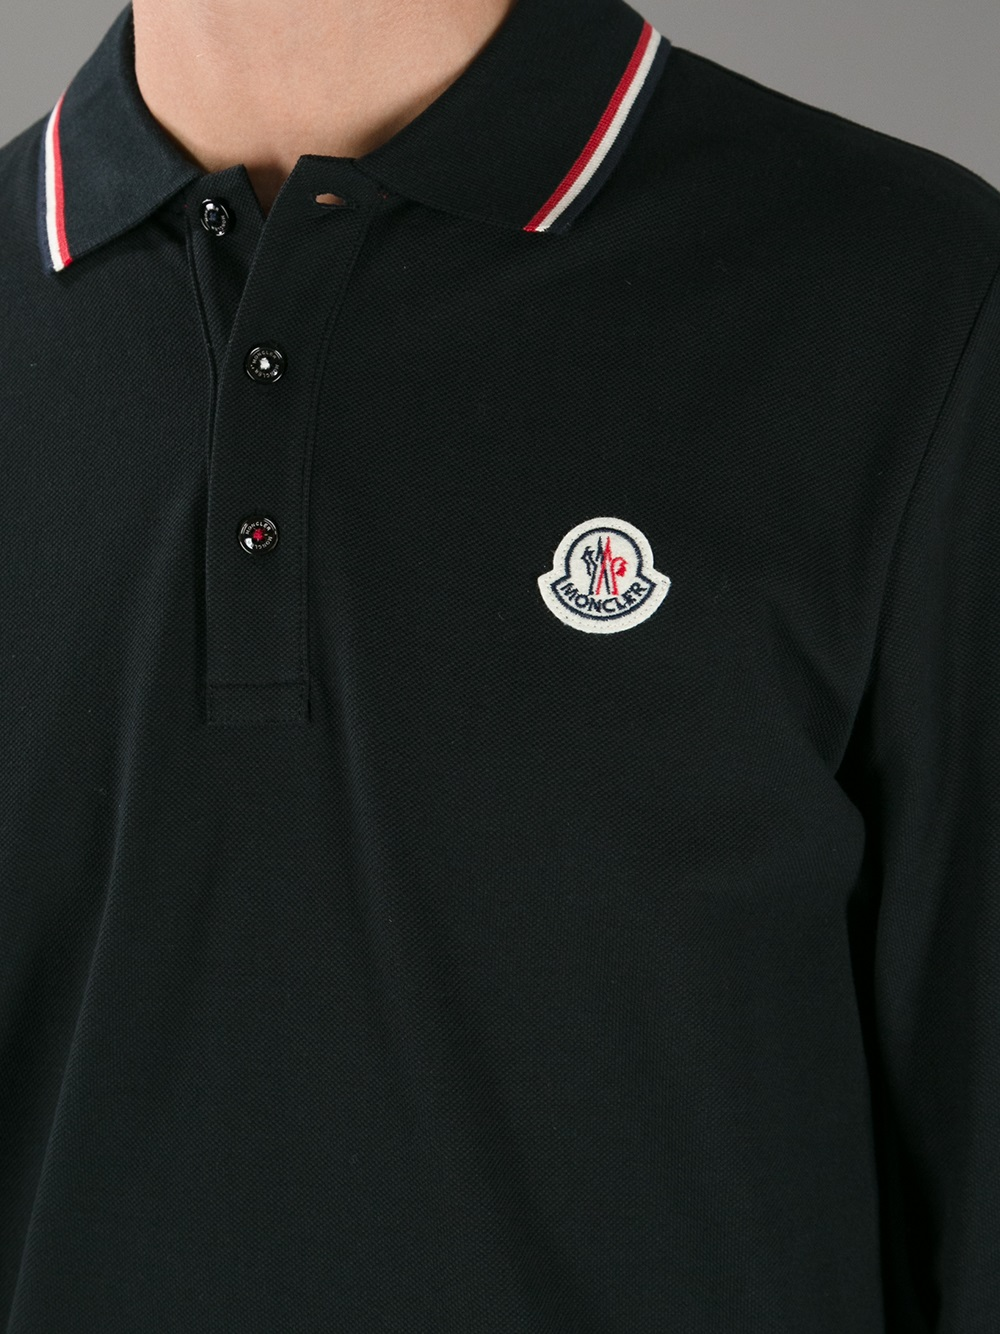 6c31b8407 Lyst - Moncler Long Sleeve Polo Shirt in Black for Men